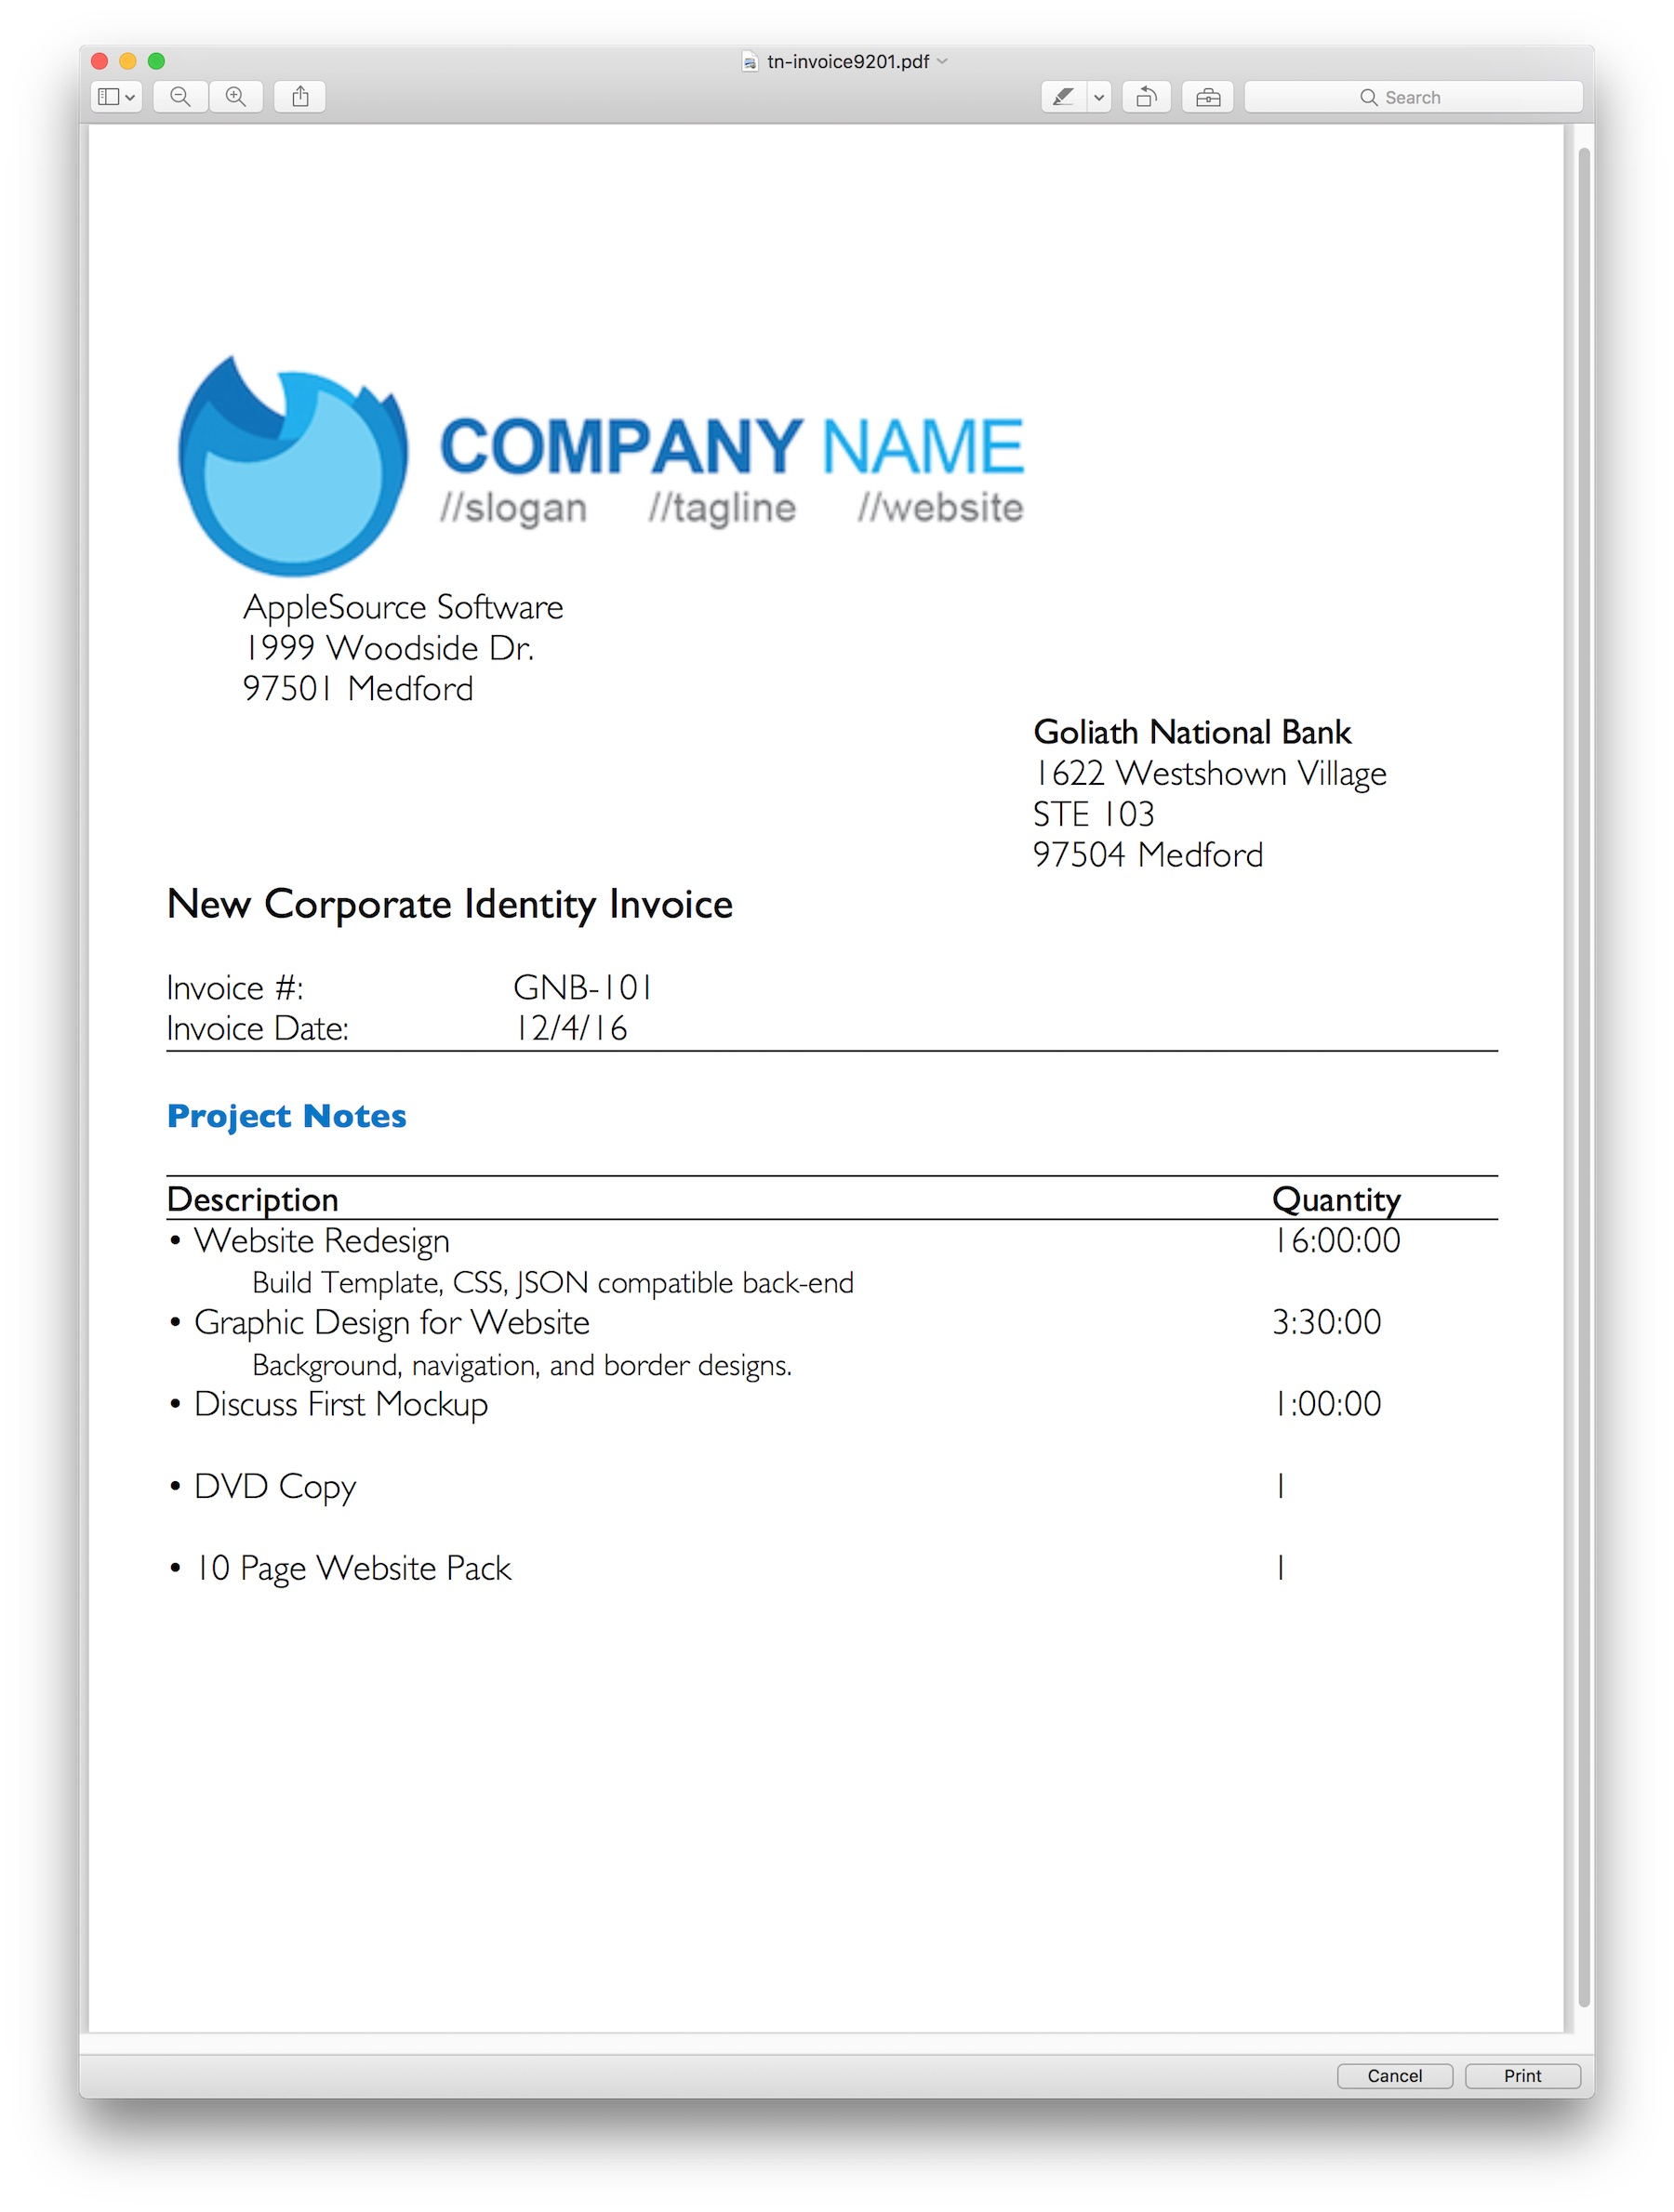 AppleSource Software TimeNet Invoice Templates Time Tracking - Software invoice template